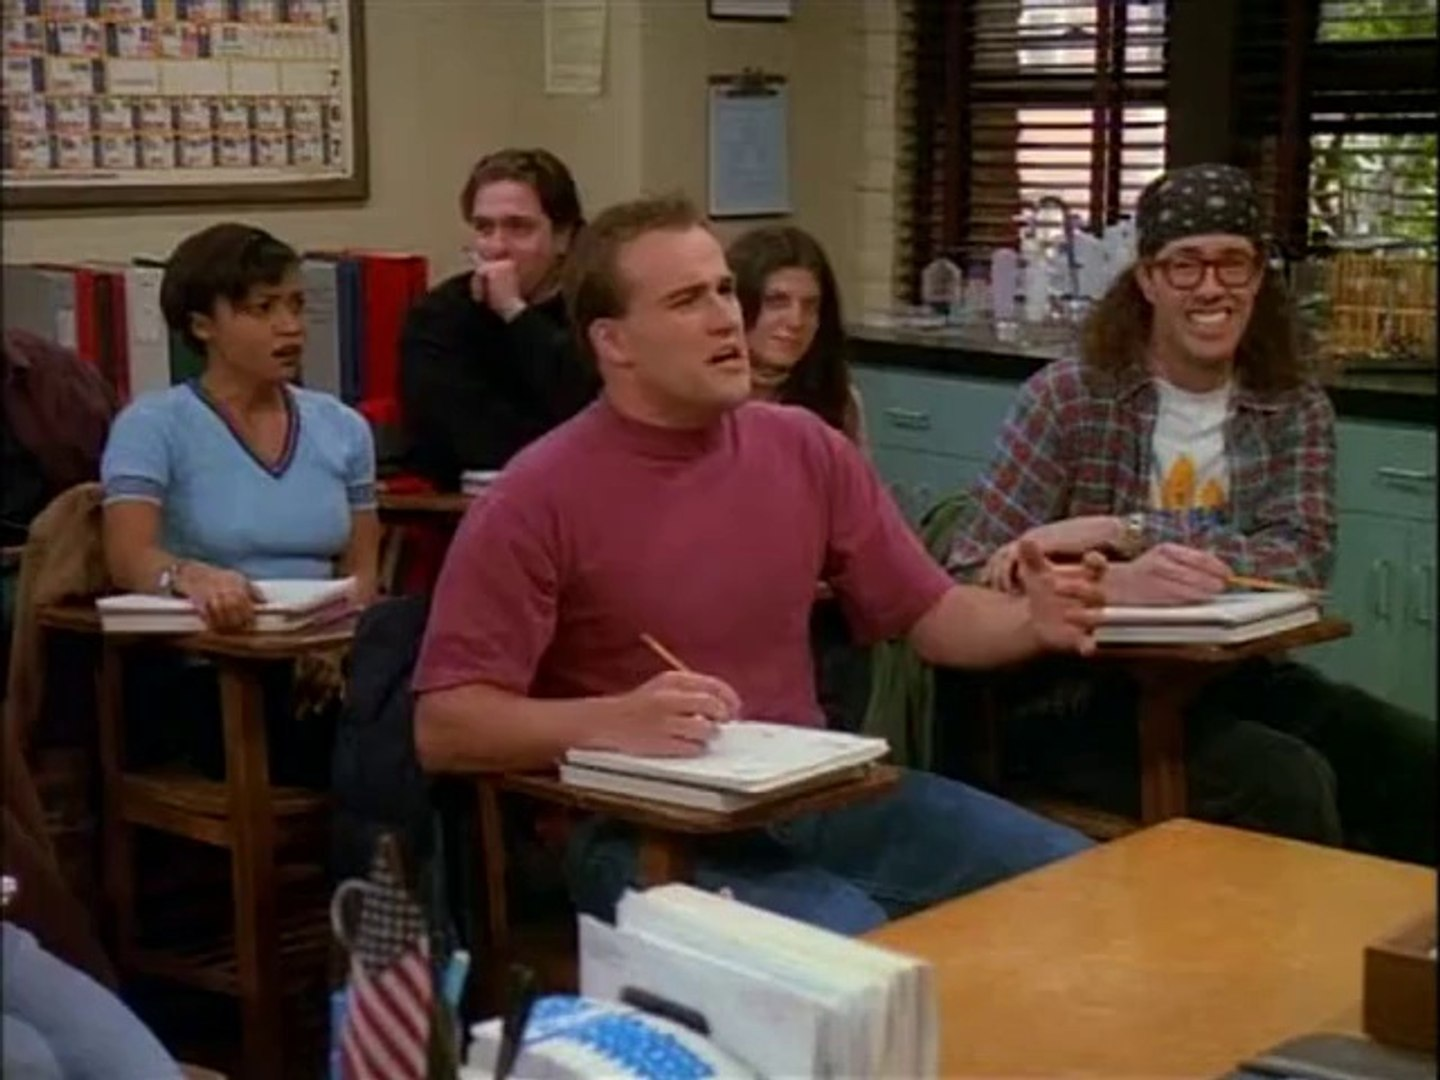 3rd rock from the sun full episodes online free